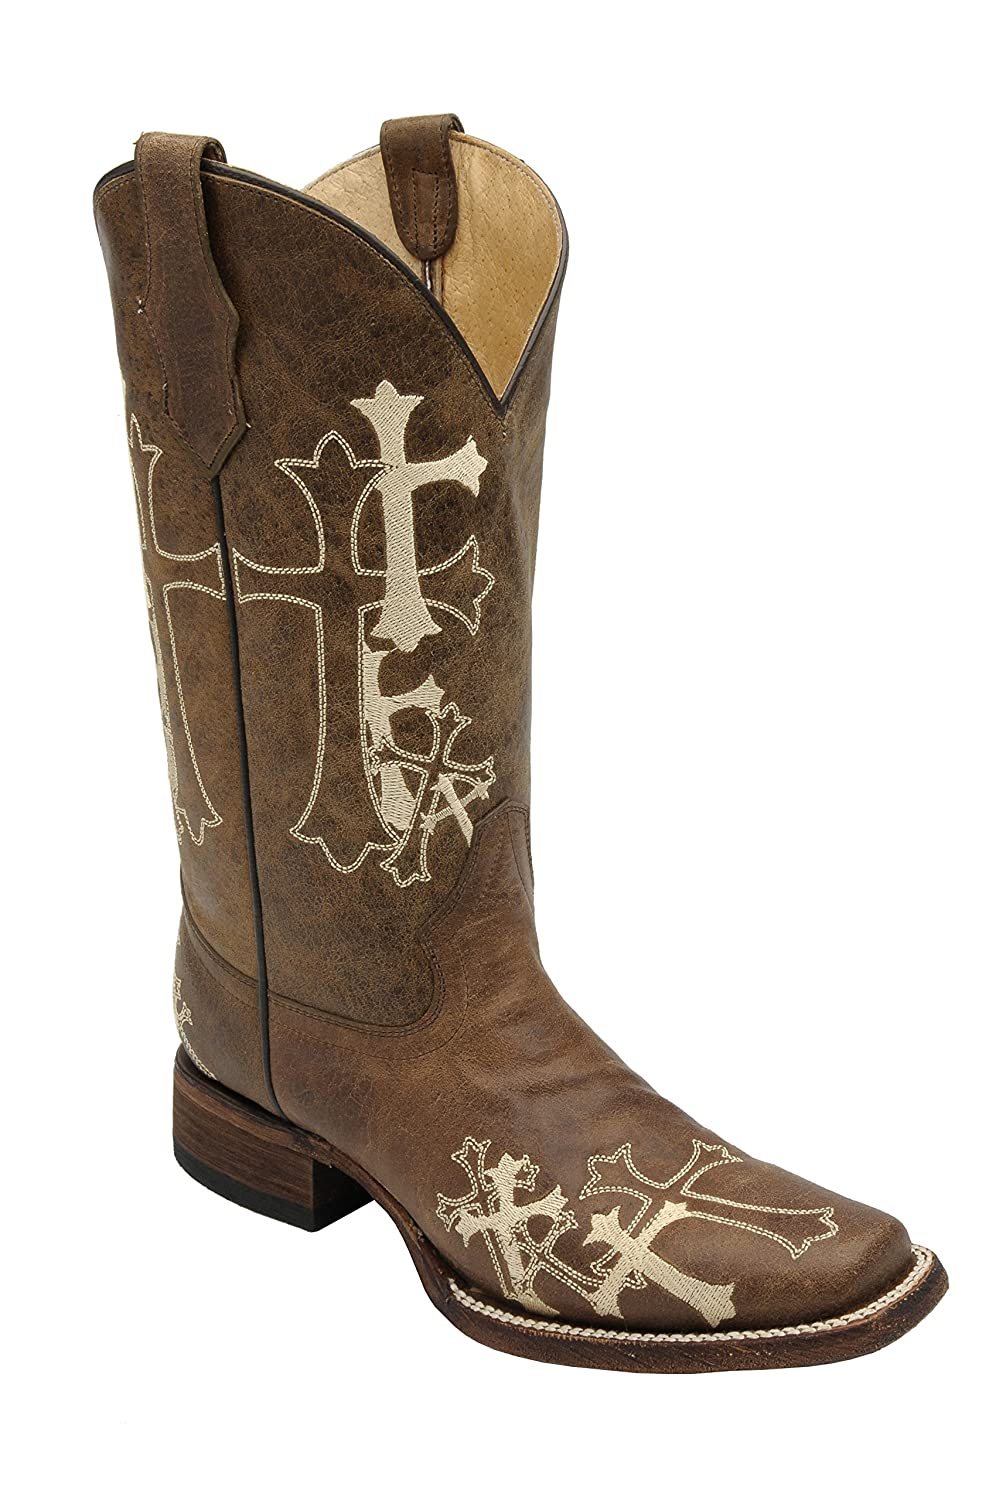 Corral Women's Circle G Side Cross Embroidered Square Toe Western Boot B00DZ4PMJ2 9 B(M) US|Brown